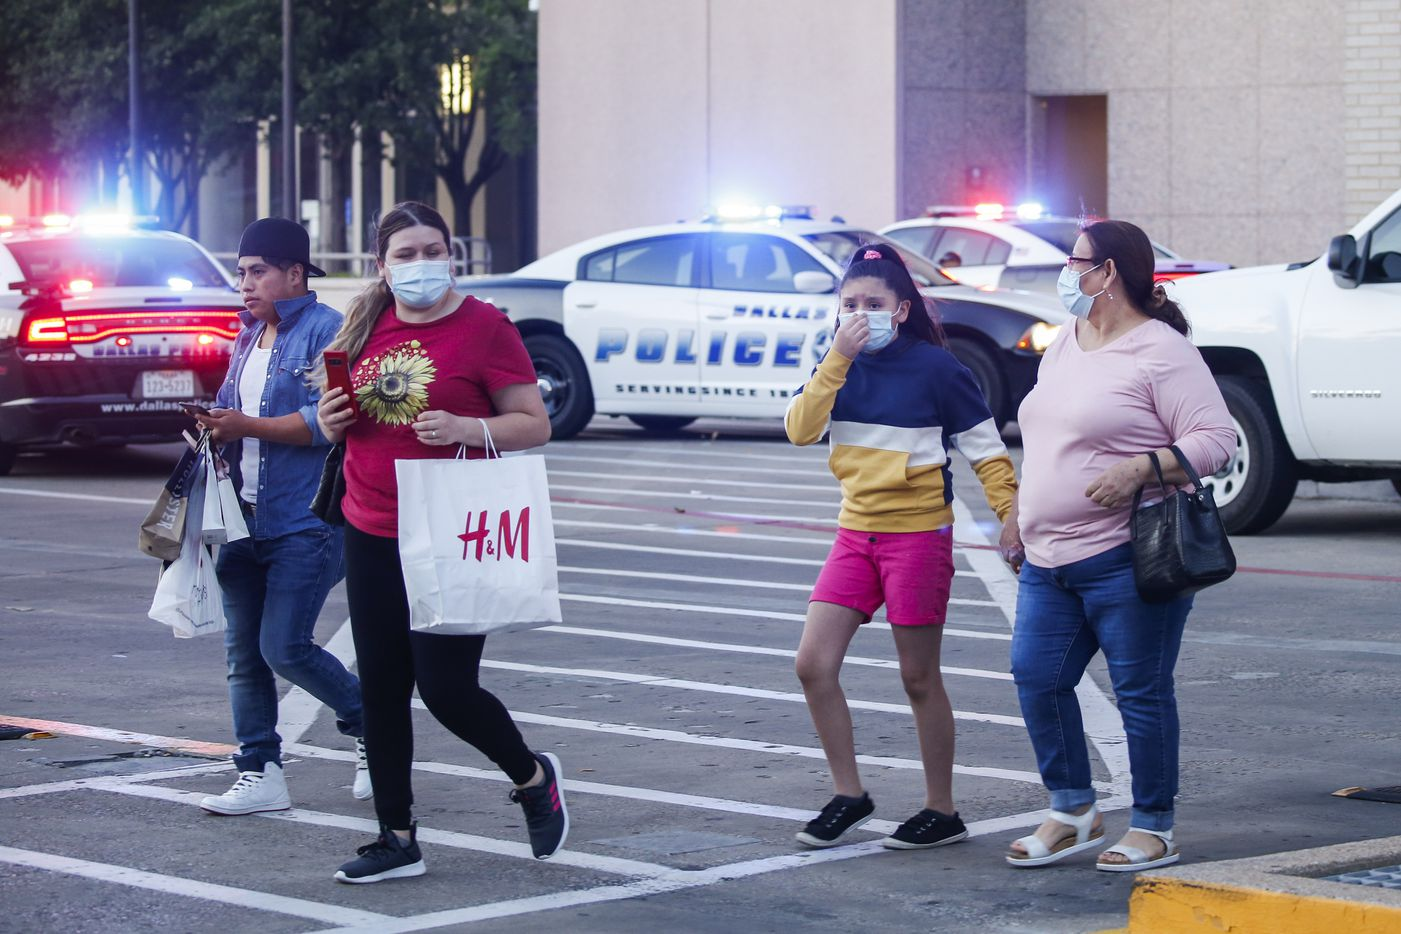 People are escorted out of Galleria Dallas mall, where a shooting was reported Tuesday, June 16, 2020 in Dallas.